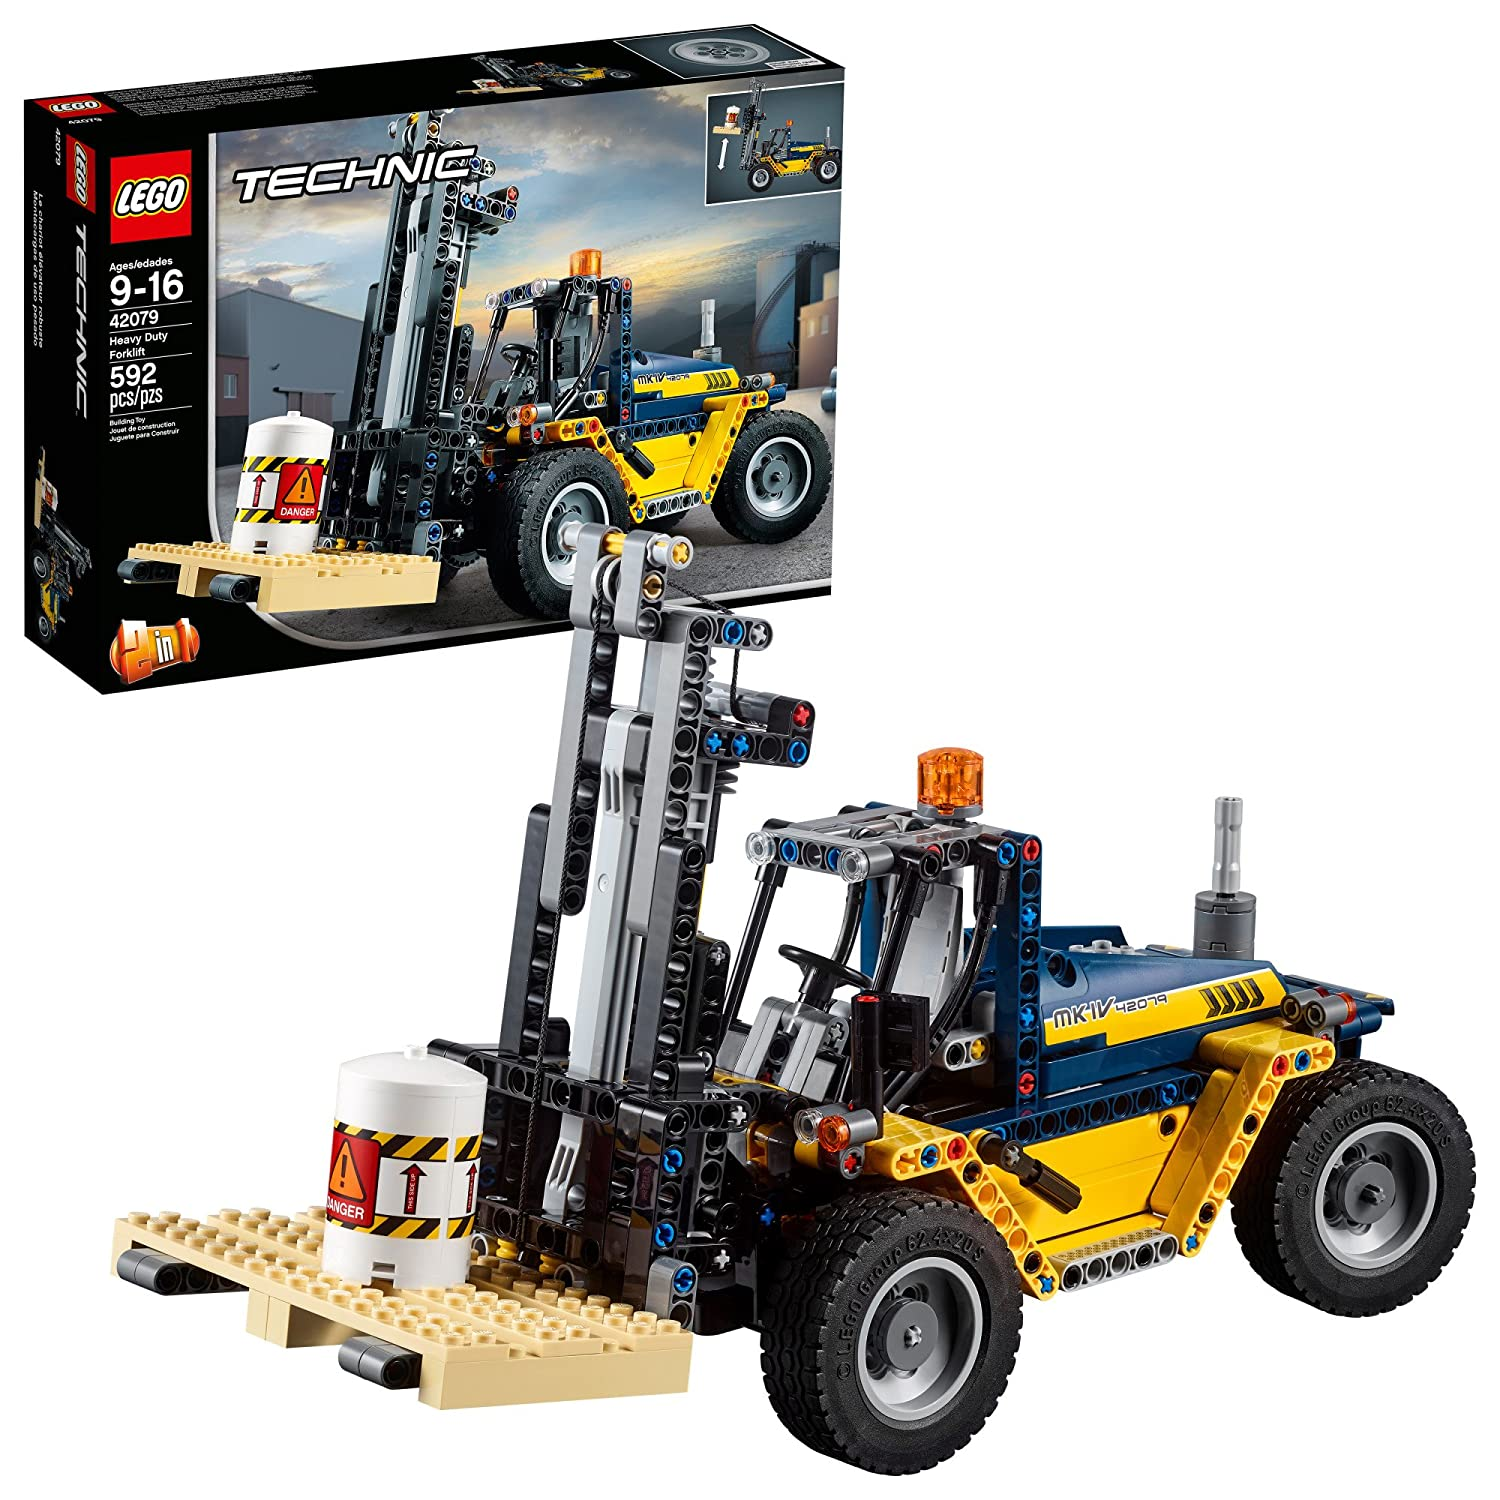 LEGO Technic Heavy Duty Forklift 42079 Building Kit (592 Piece) 6213710